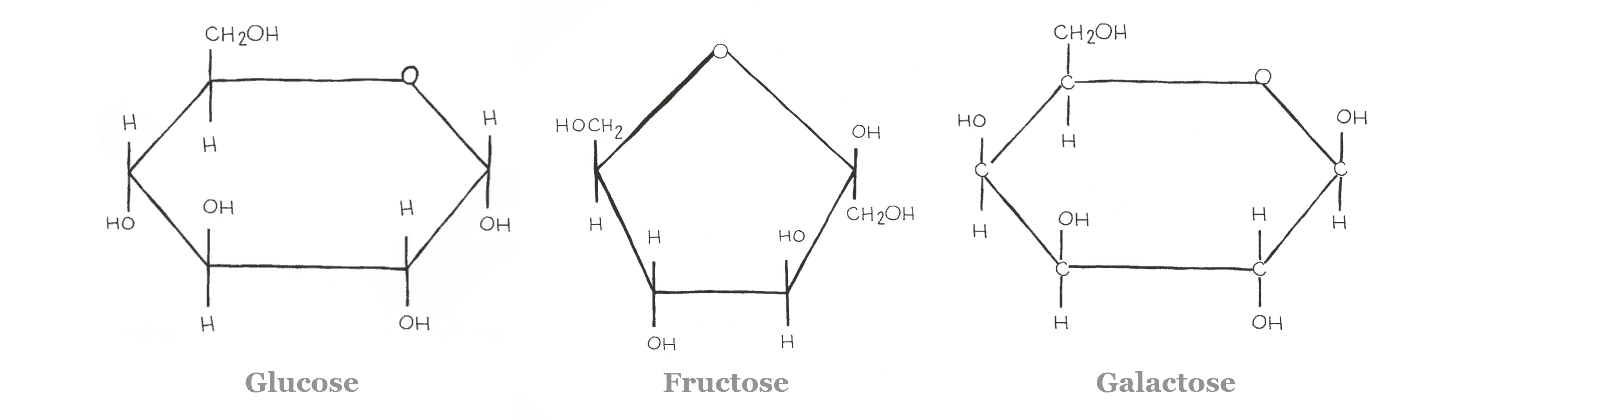 Diagram - Glucose, Fructose, Galactose - Isomers